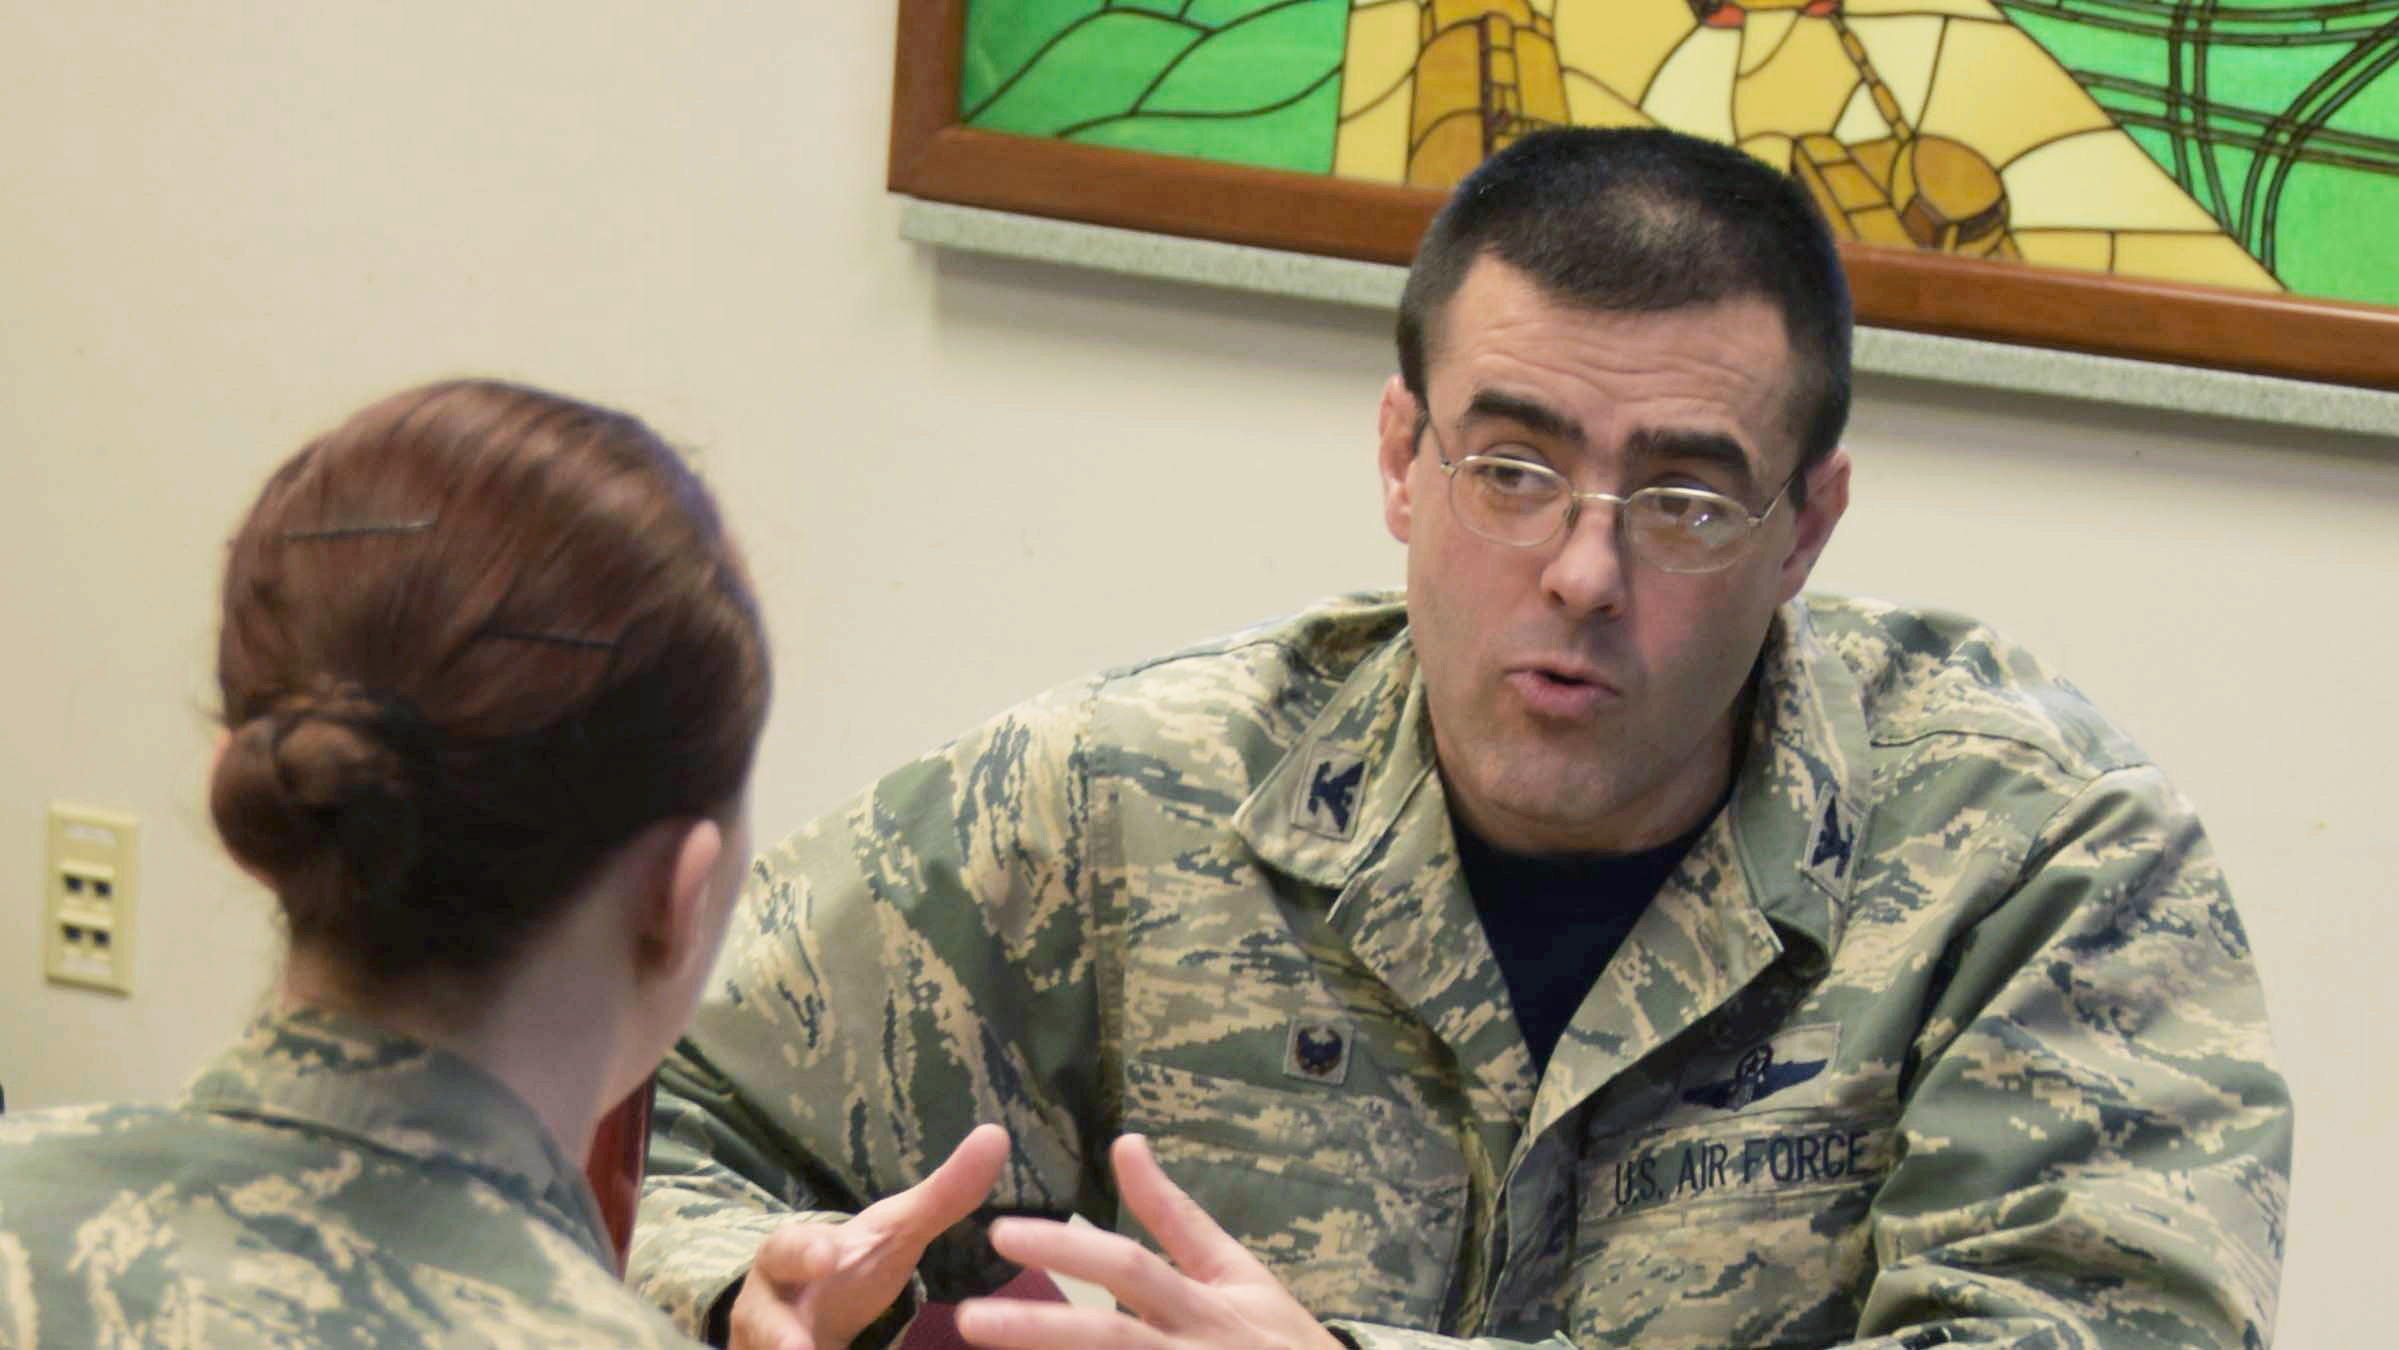 Service member provides peer-to-peer support